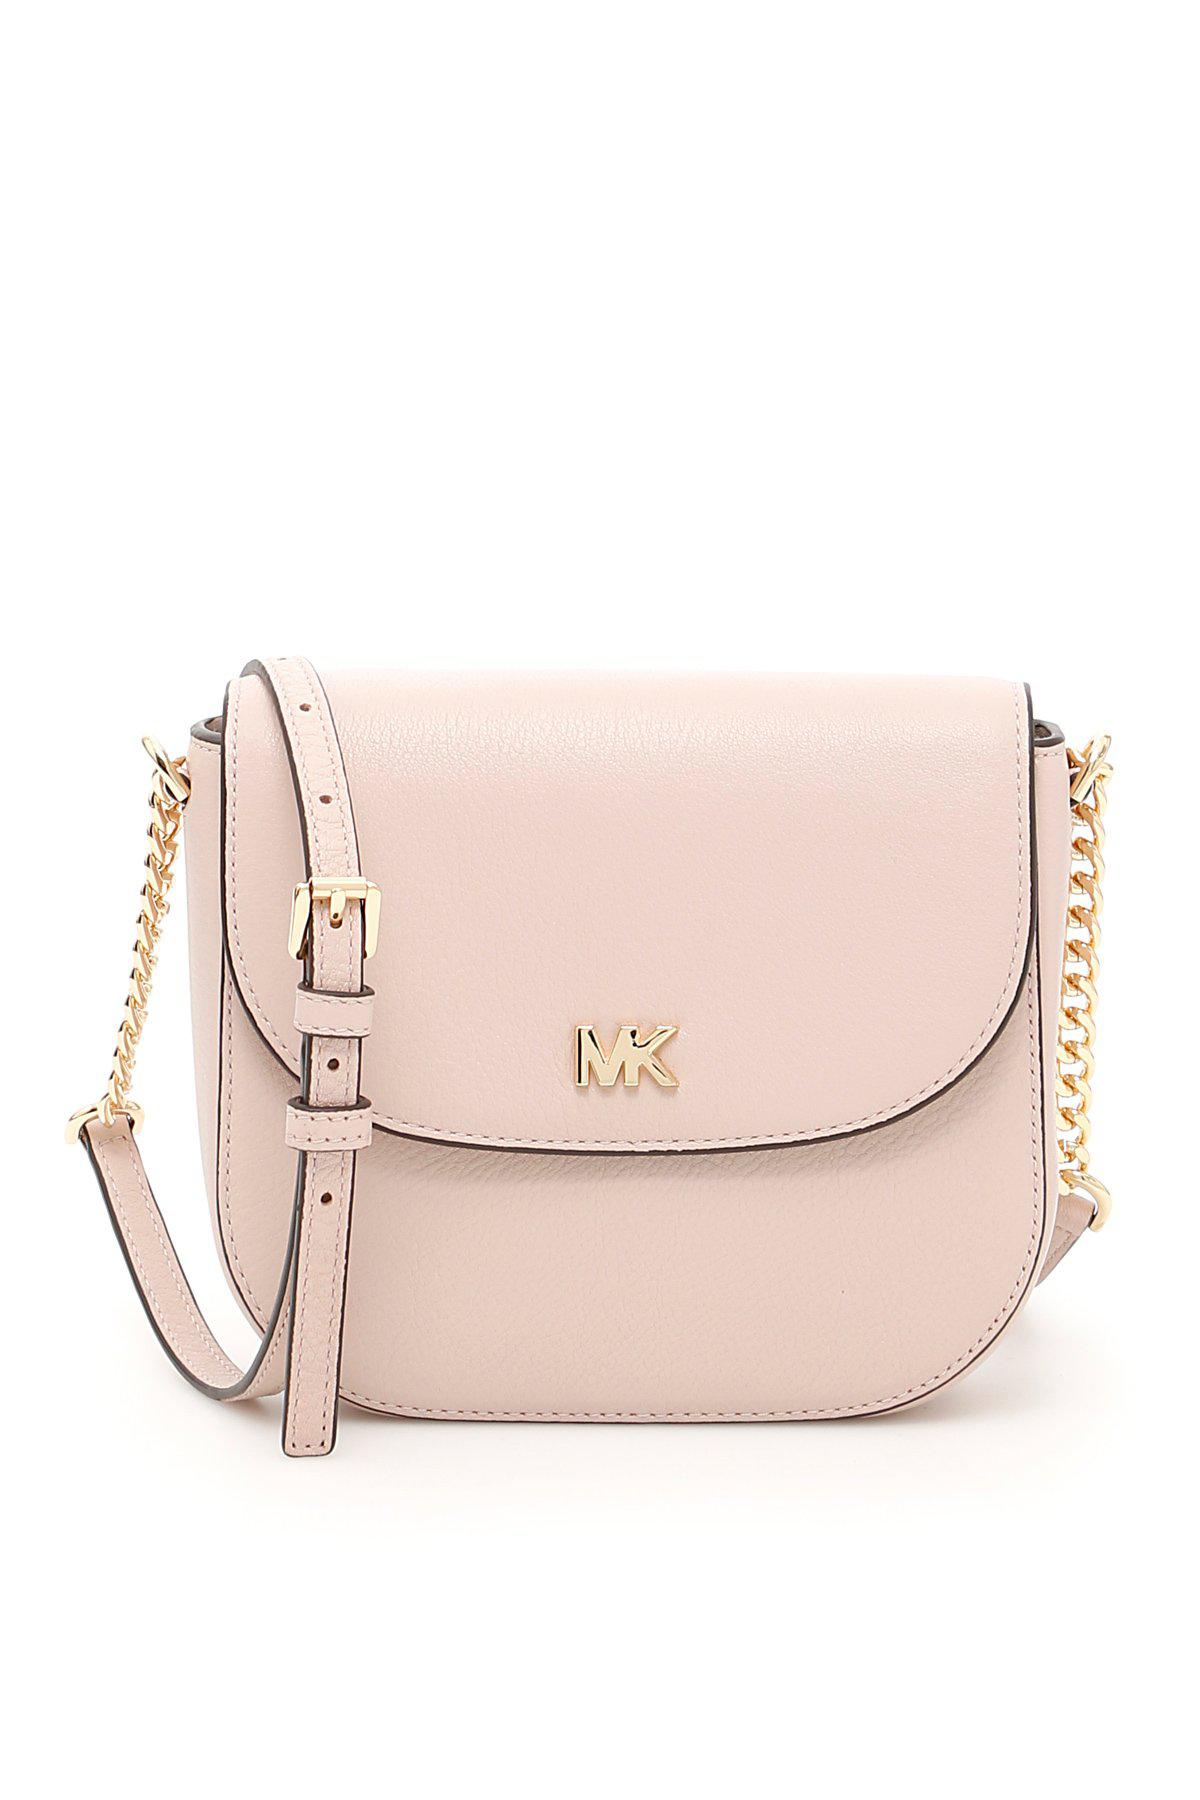 a59dab391dbf61 Lyst - MICHAEL Michael Kors Dome Crossbody Bag in Pink